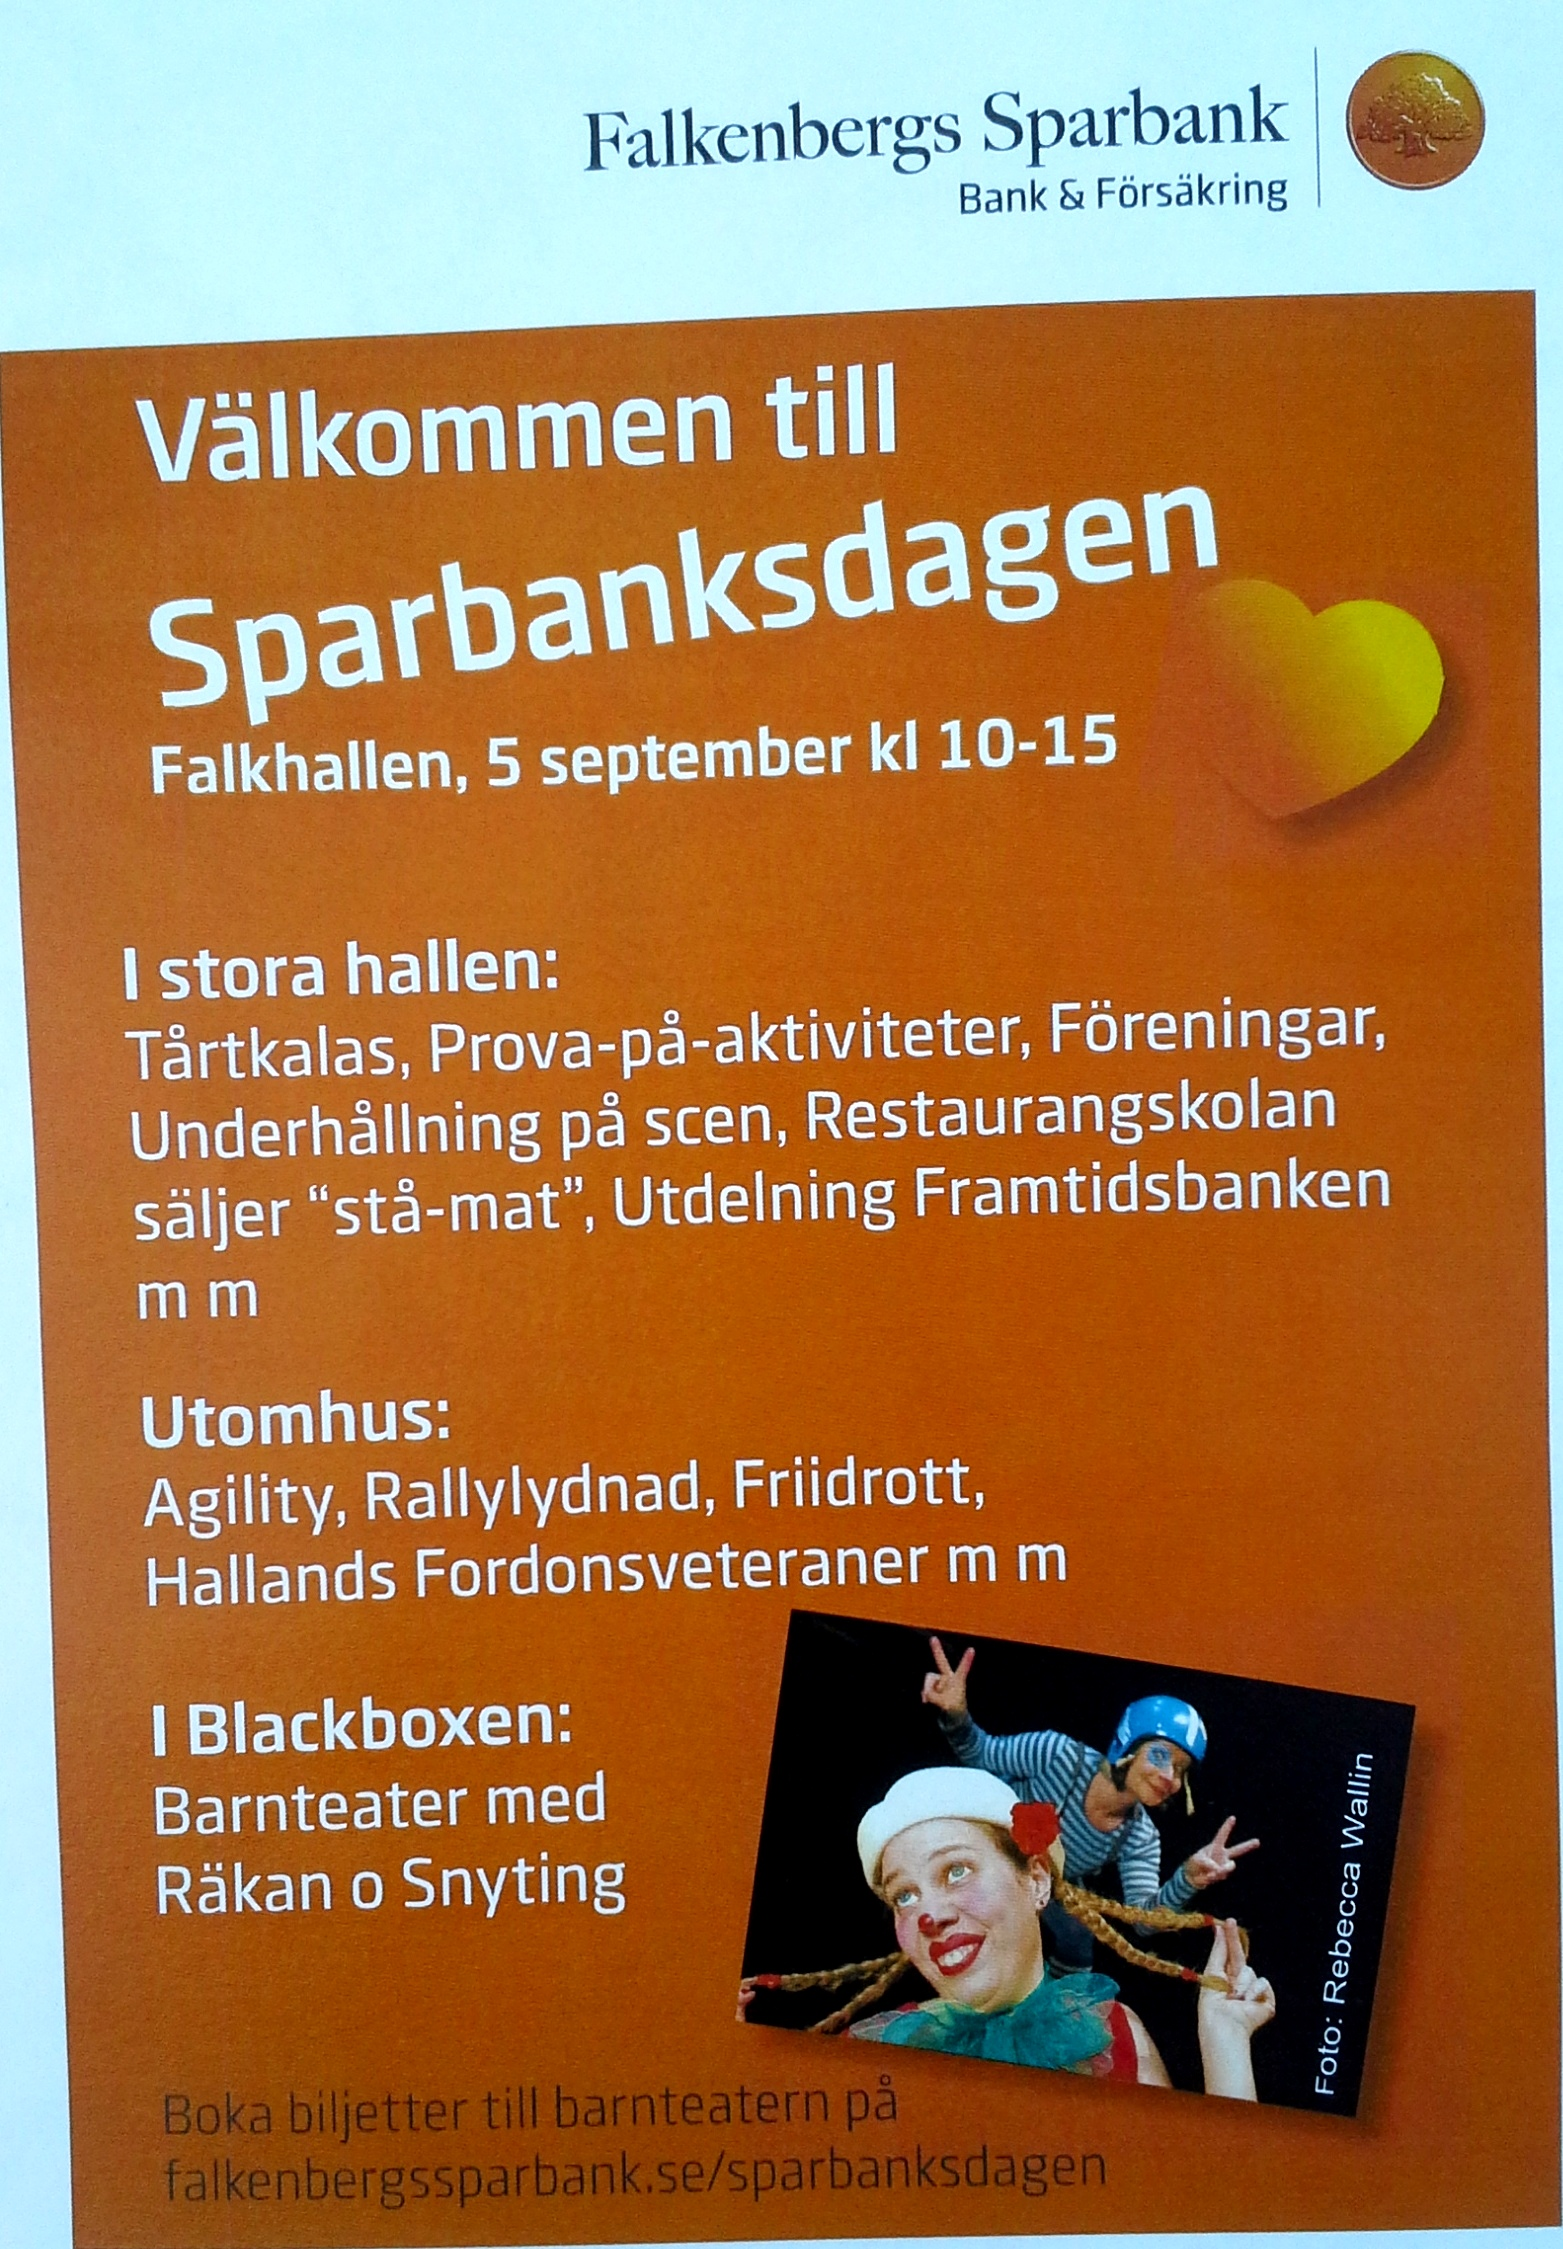 Sparbanksdagen 5 september